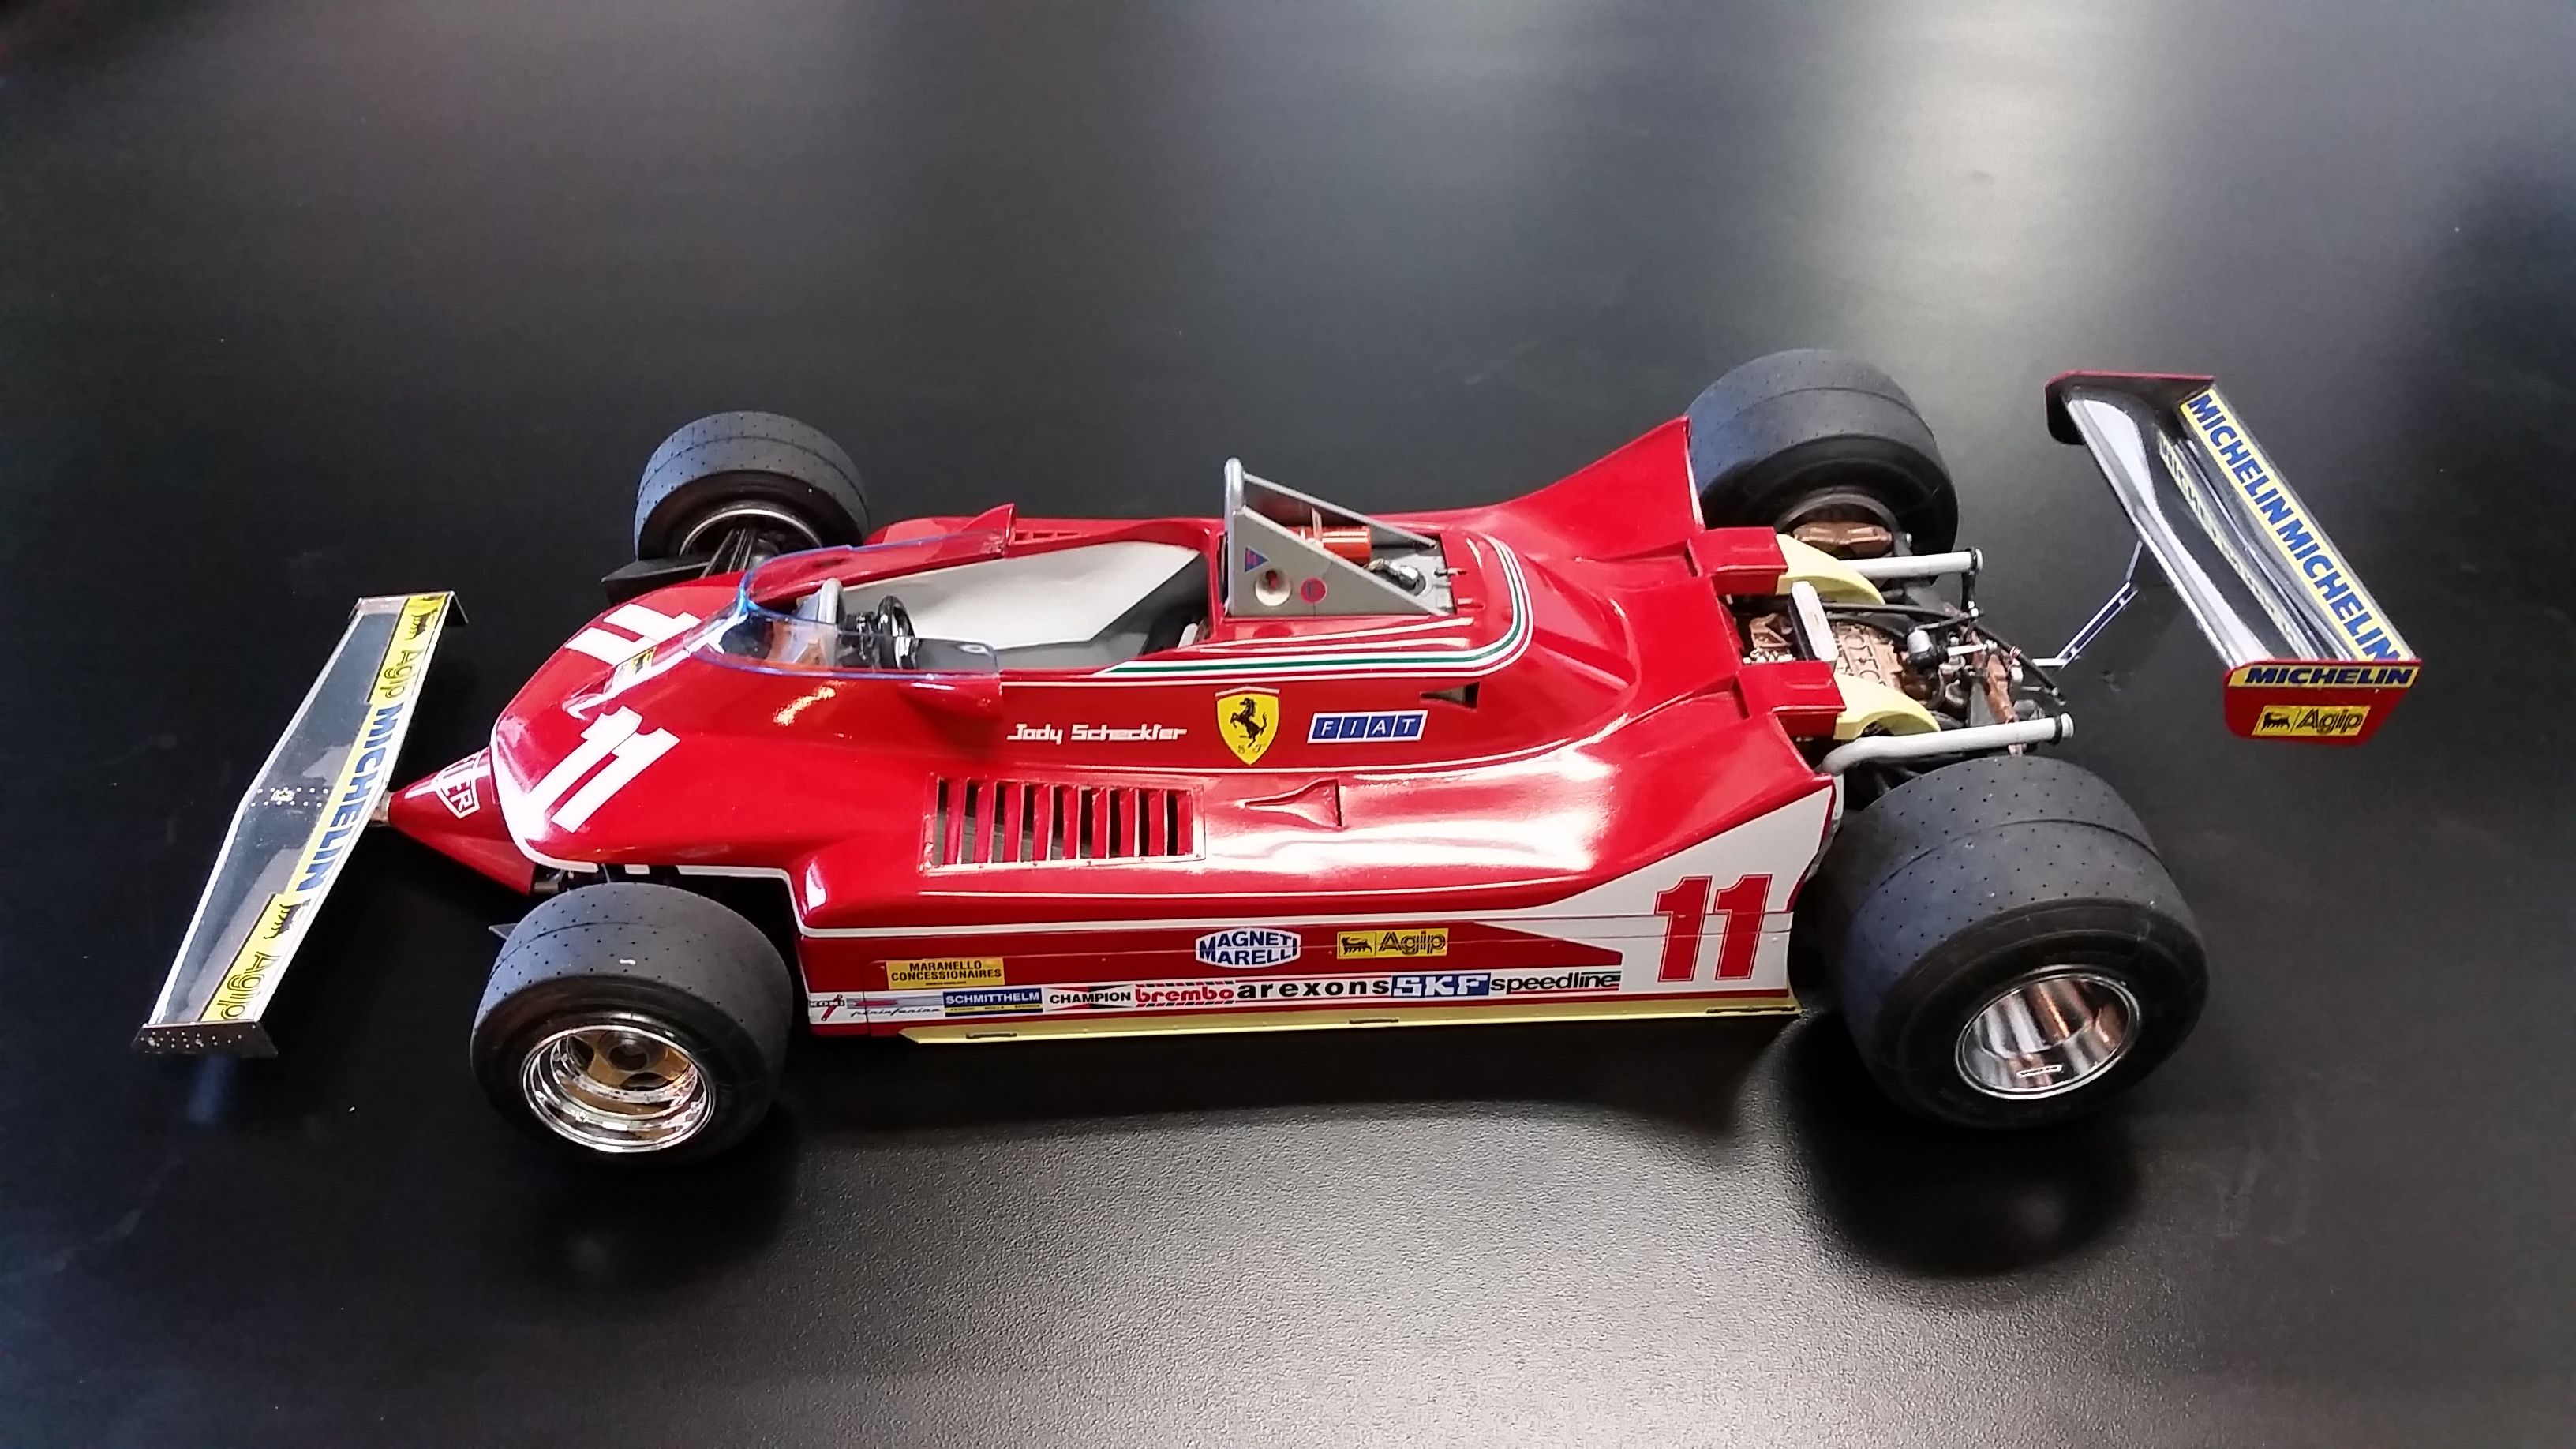 tamiya ferrari 312t4 scale 1 12 by dennis laplante ferrari 312t4 formula one maquette. Black Bedroom Furniture Sets. Home Design Ideas